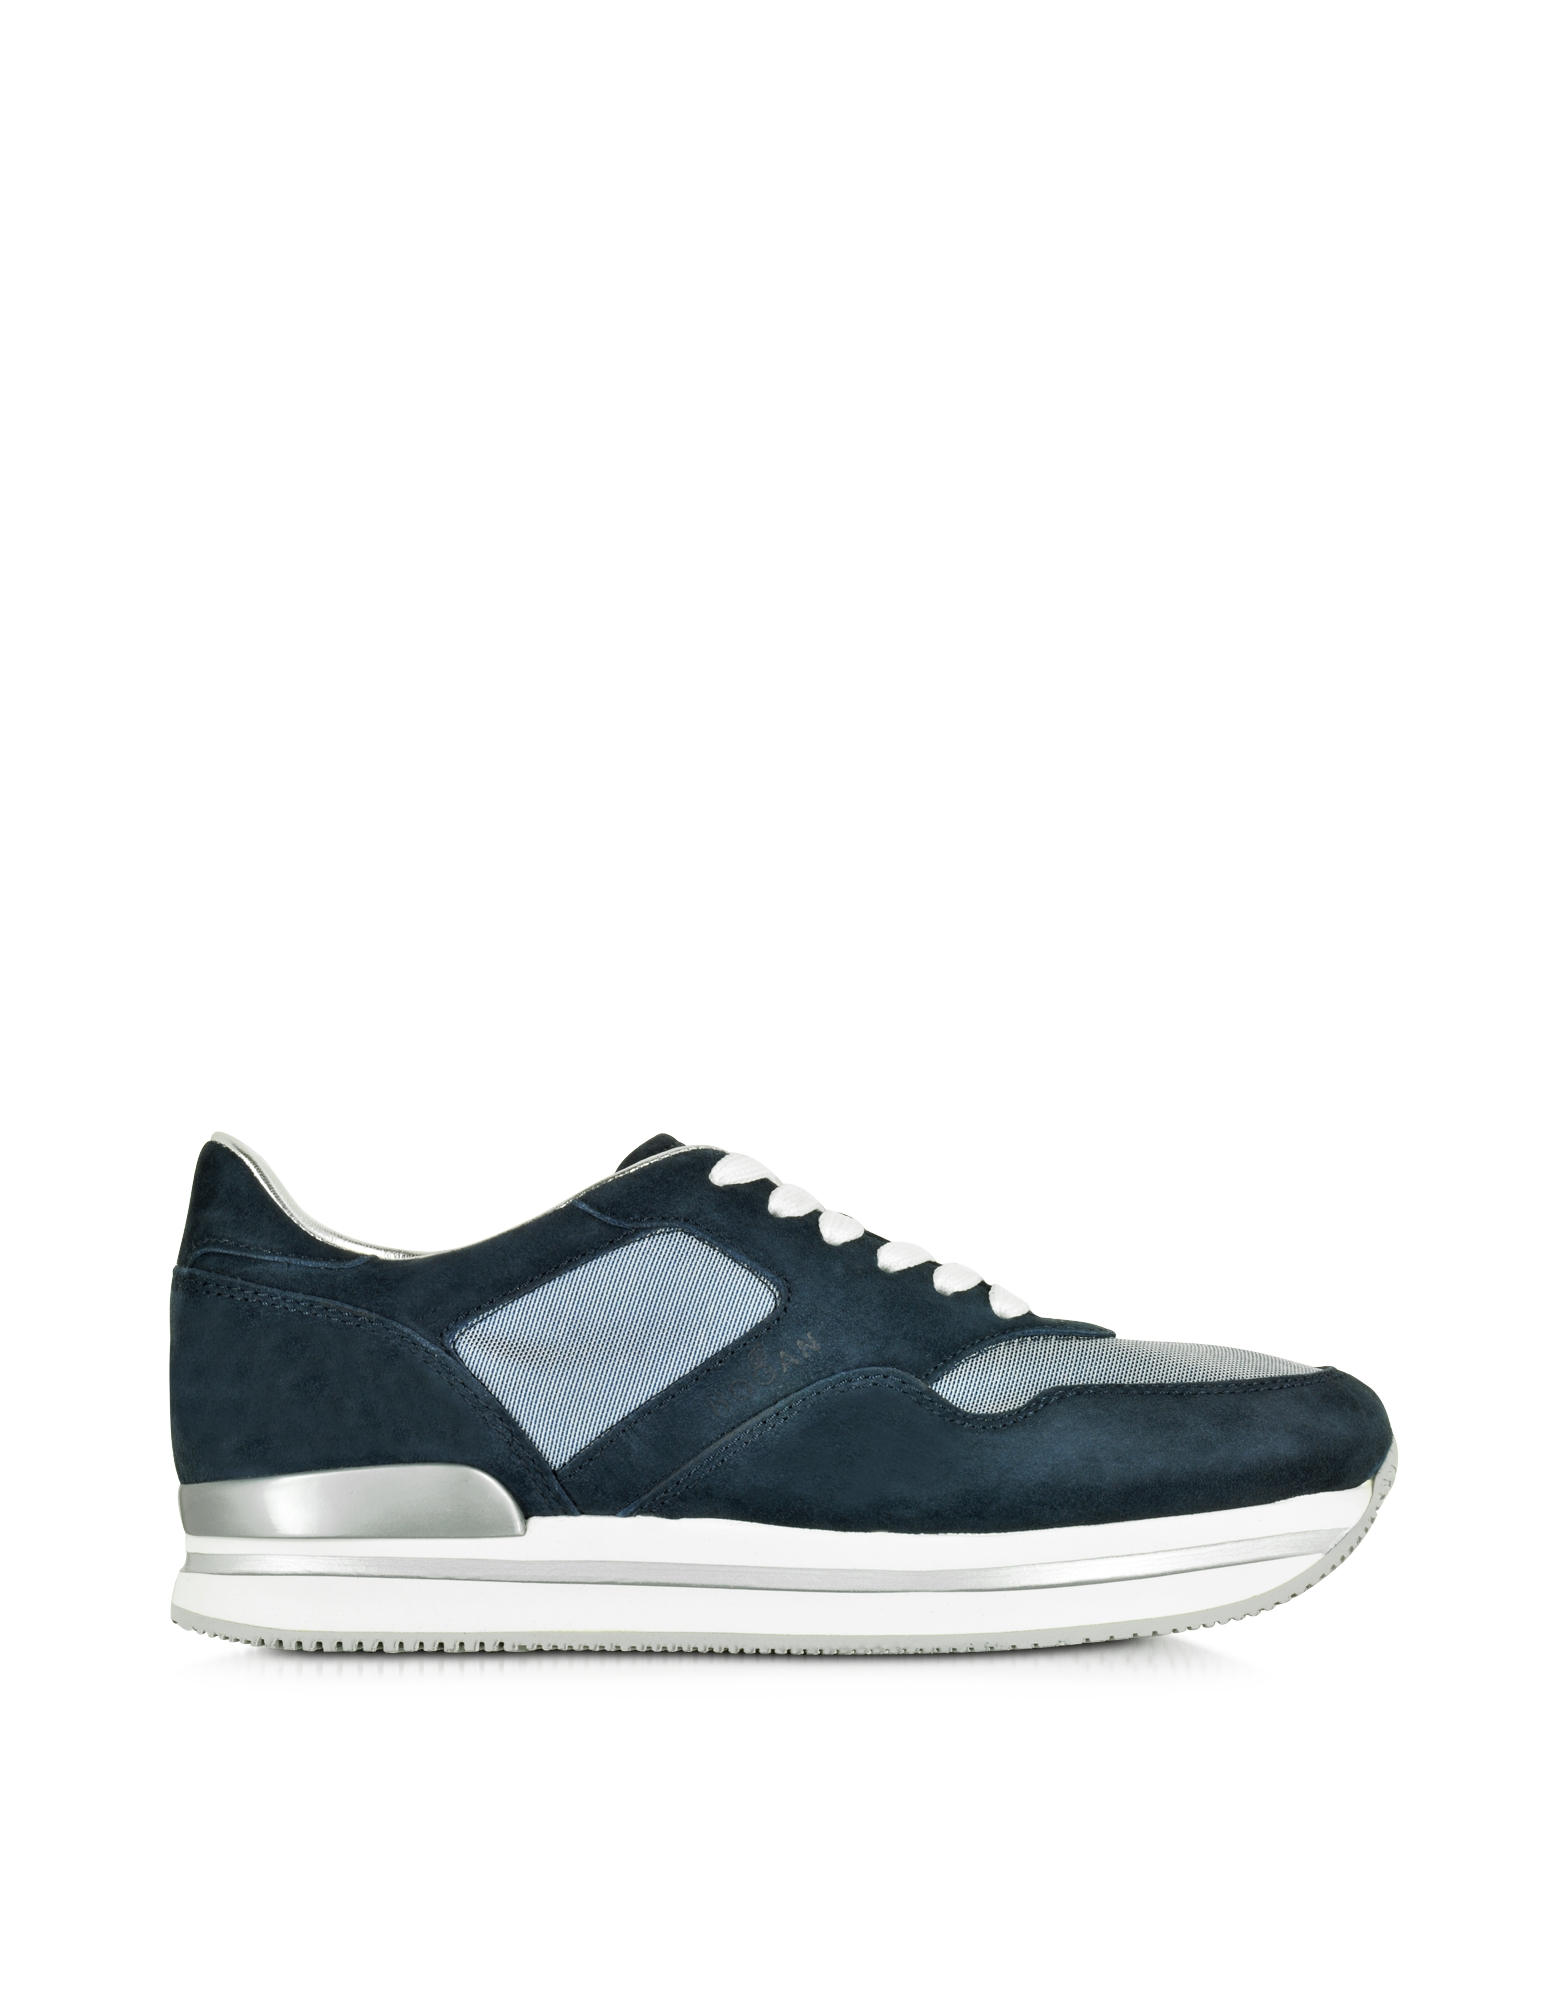 Forzieri Hogan Lyst Hogan H222 Navy Blue Suede And Mesh Sneaker In Blue